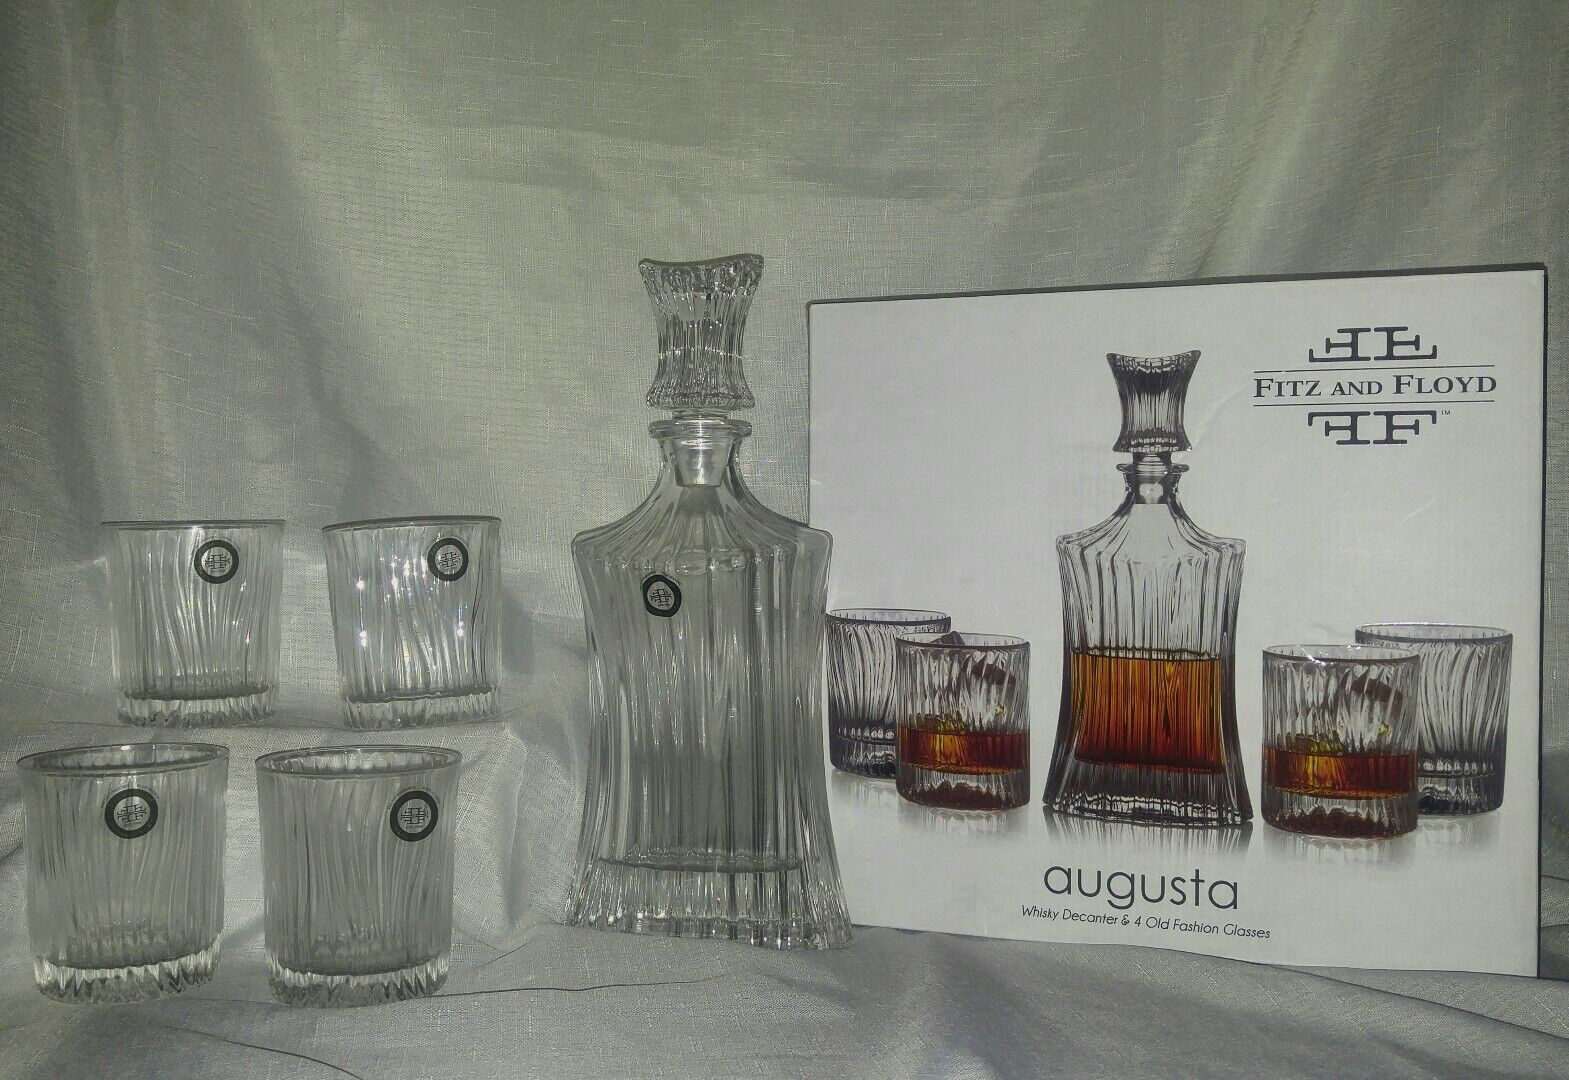 Nip Fitz and Floyd Augusta decanter and glasses 5 pc set